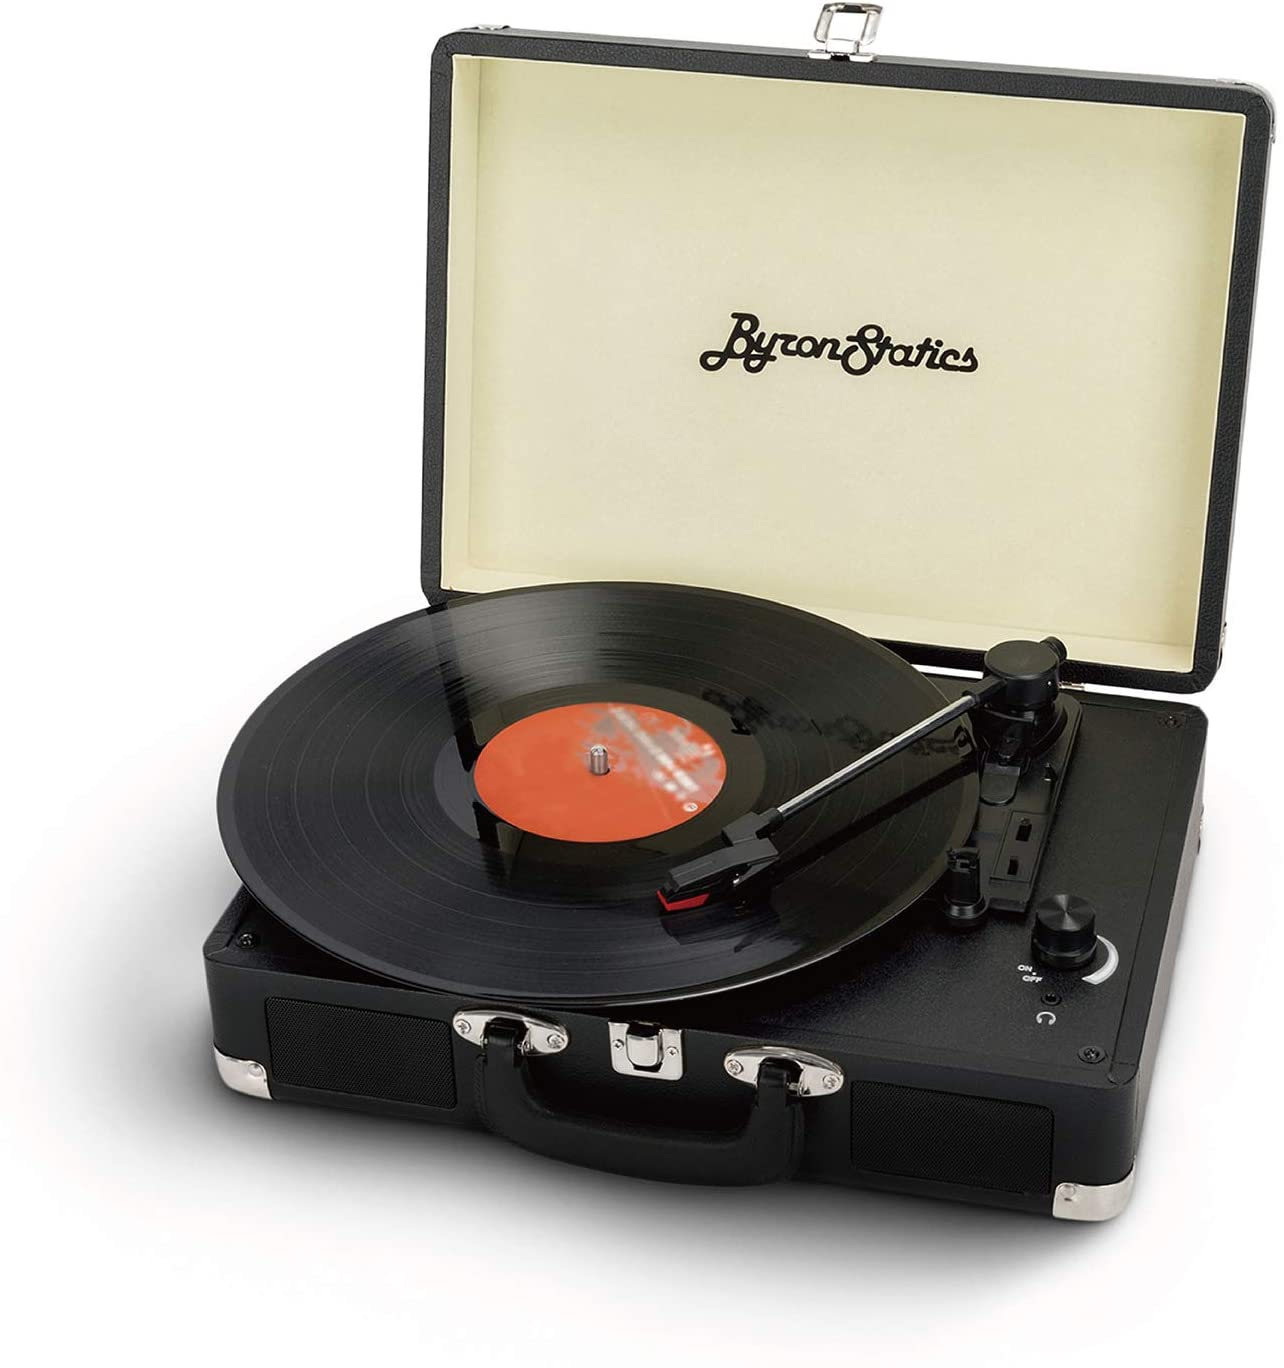 Byron Statics Vinyl Record Player with 2 Speakers